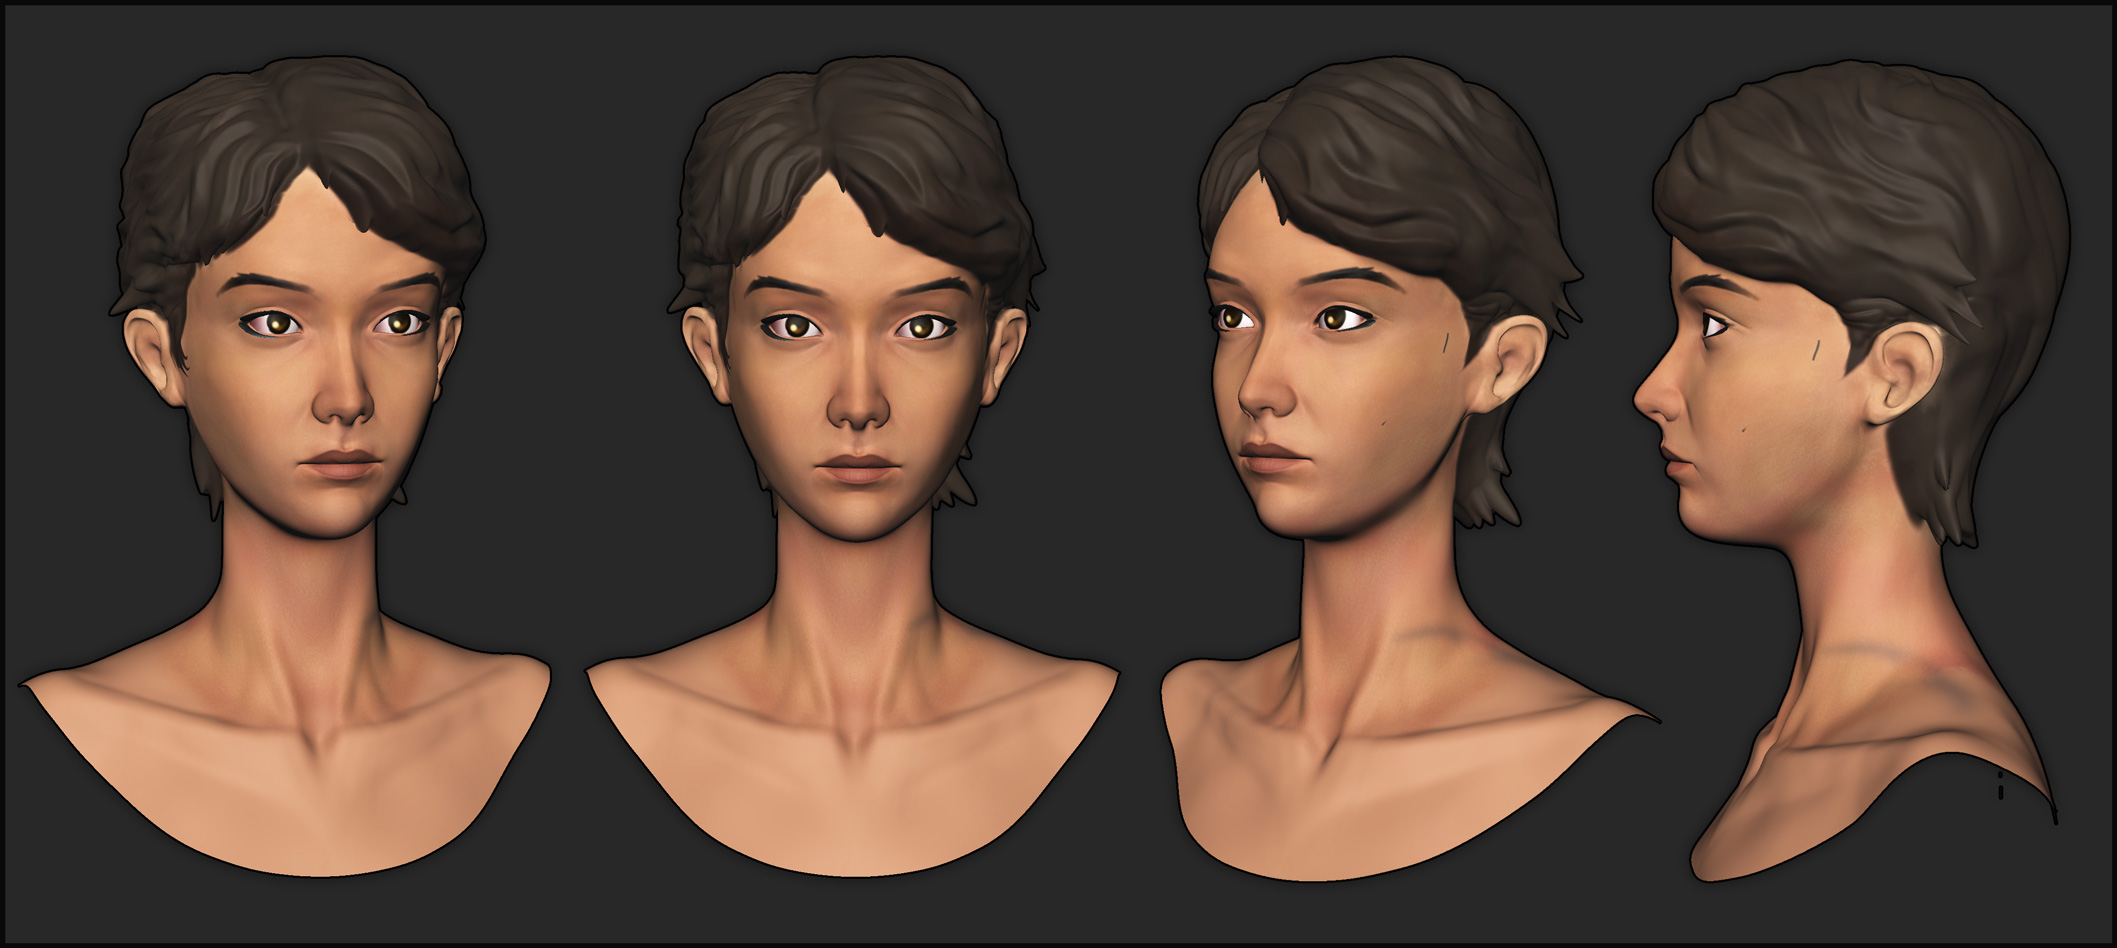 Clementine Telltale S Twd Polycount